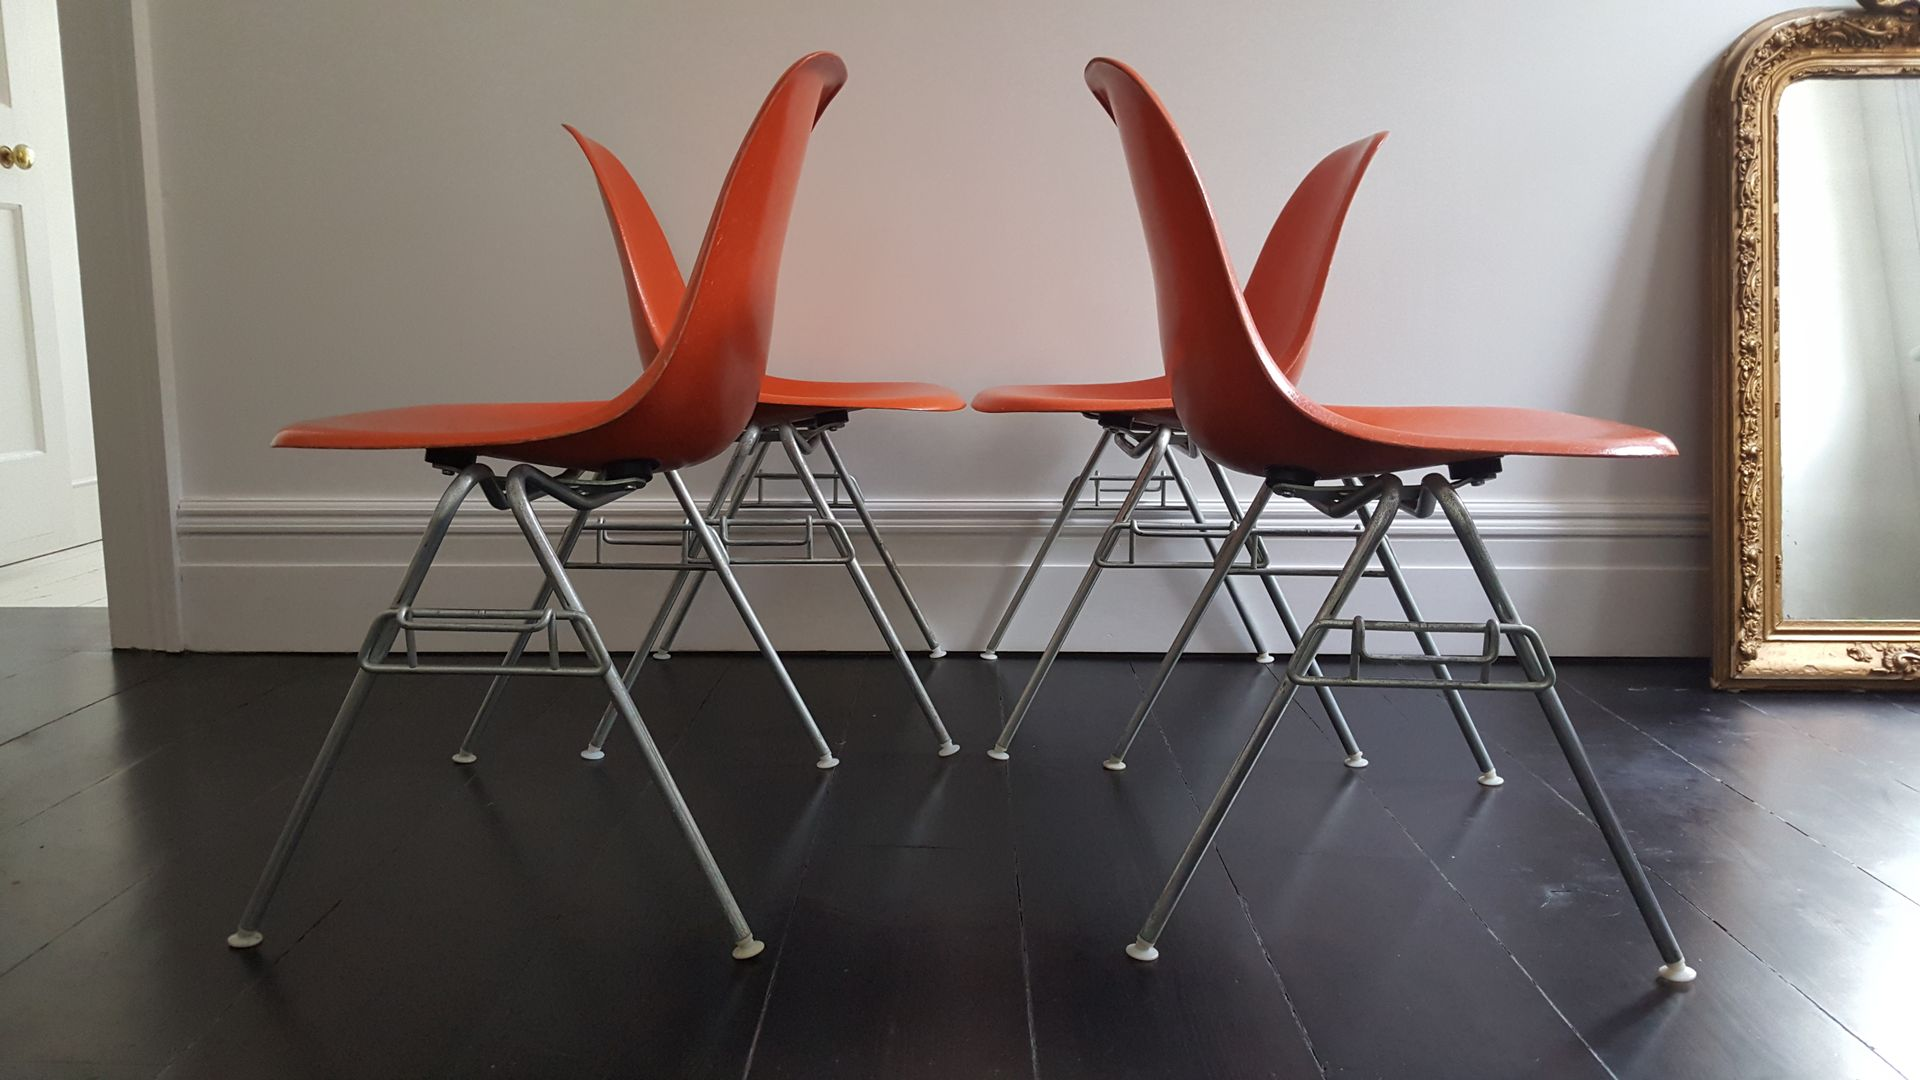 Vintage DSS Fiberglass Shell Chairs by Charles & Ray Eames for